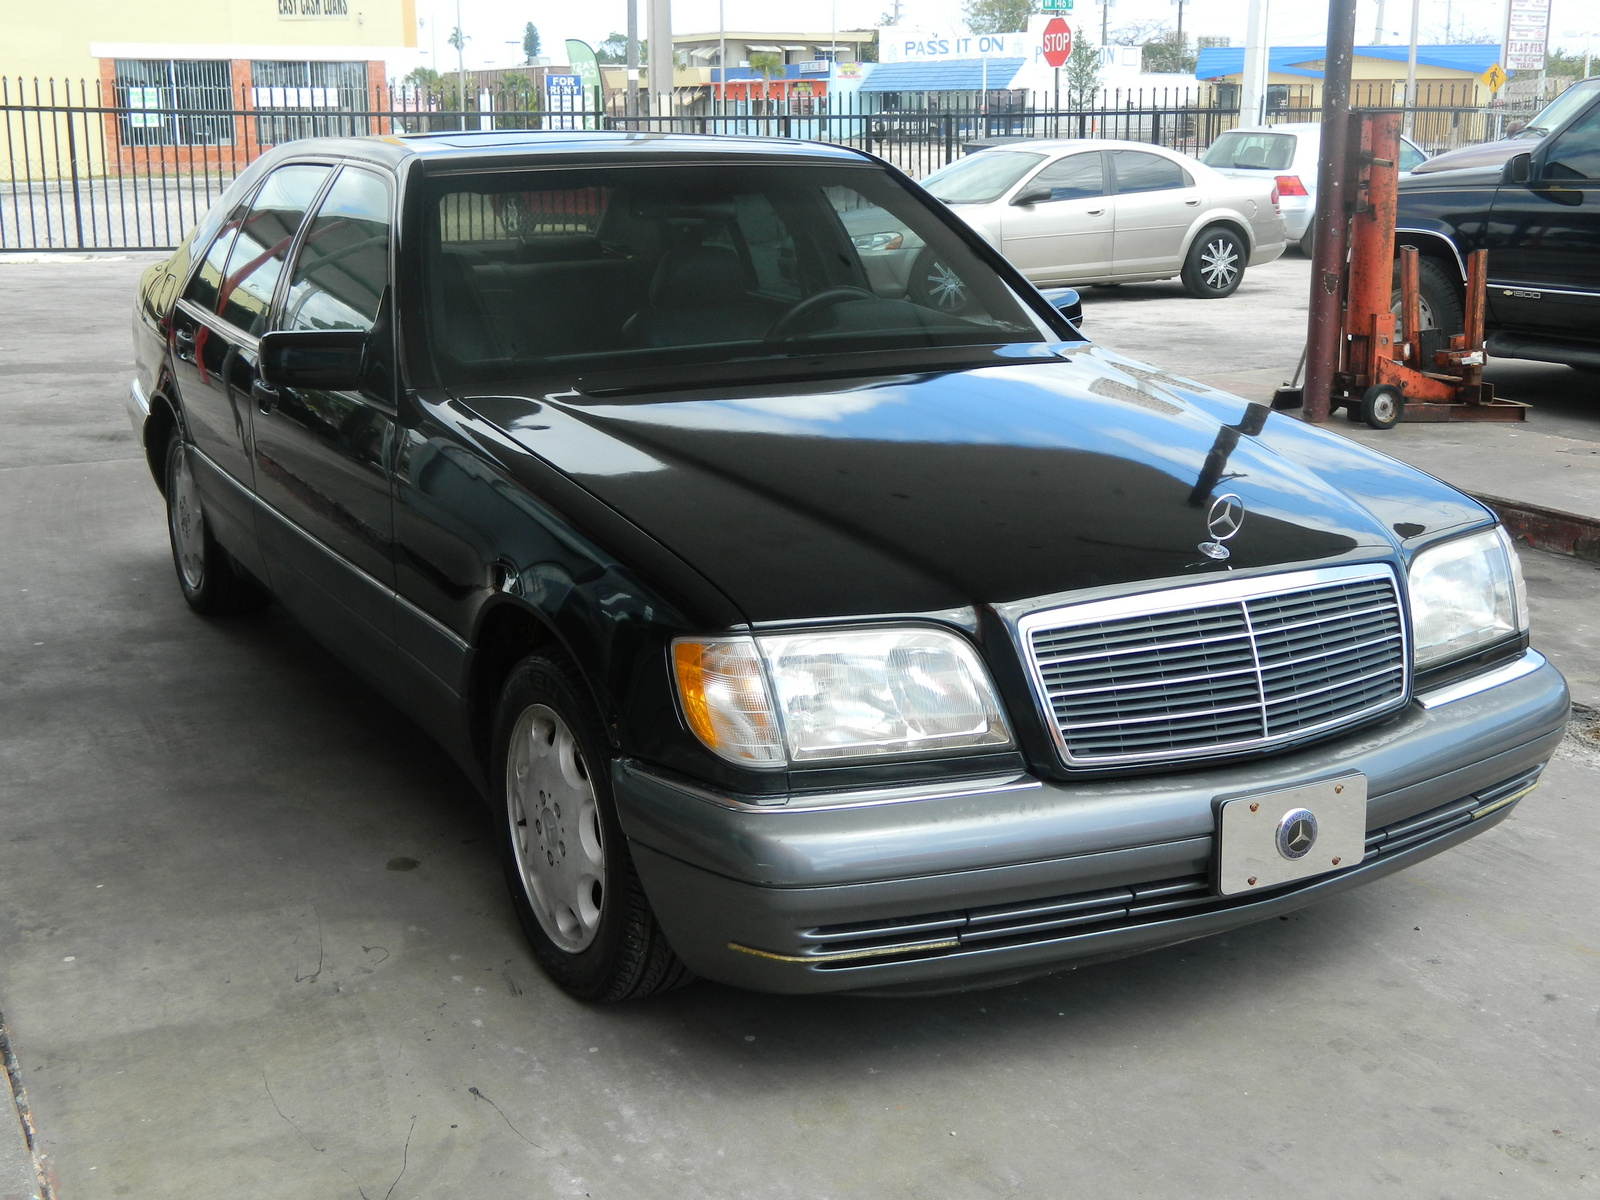 1996 mercedes benz s class pictures cargurus for Mercedes benz s320 price